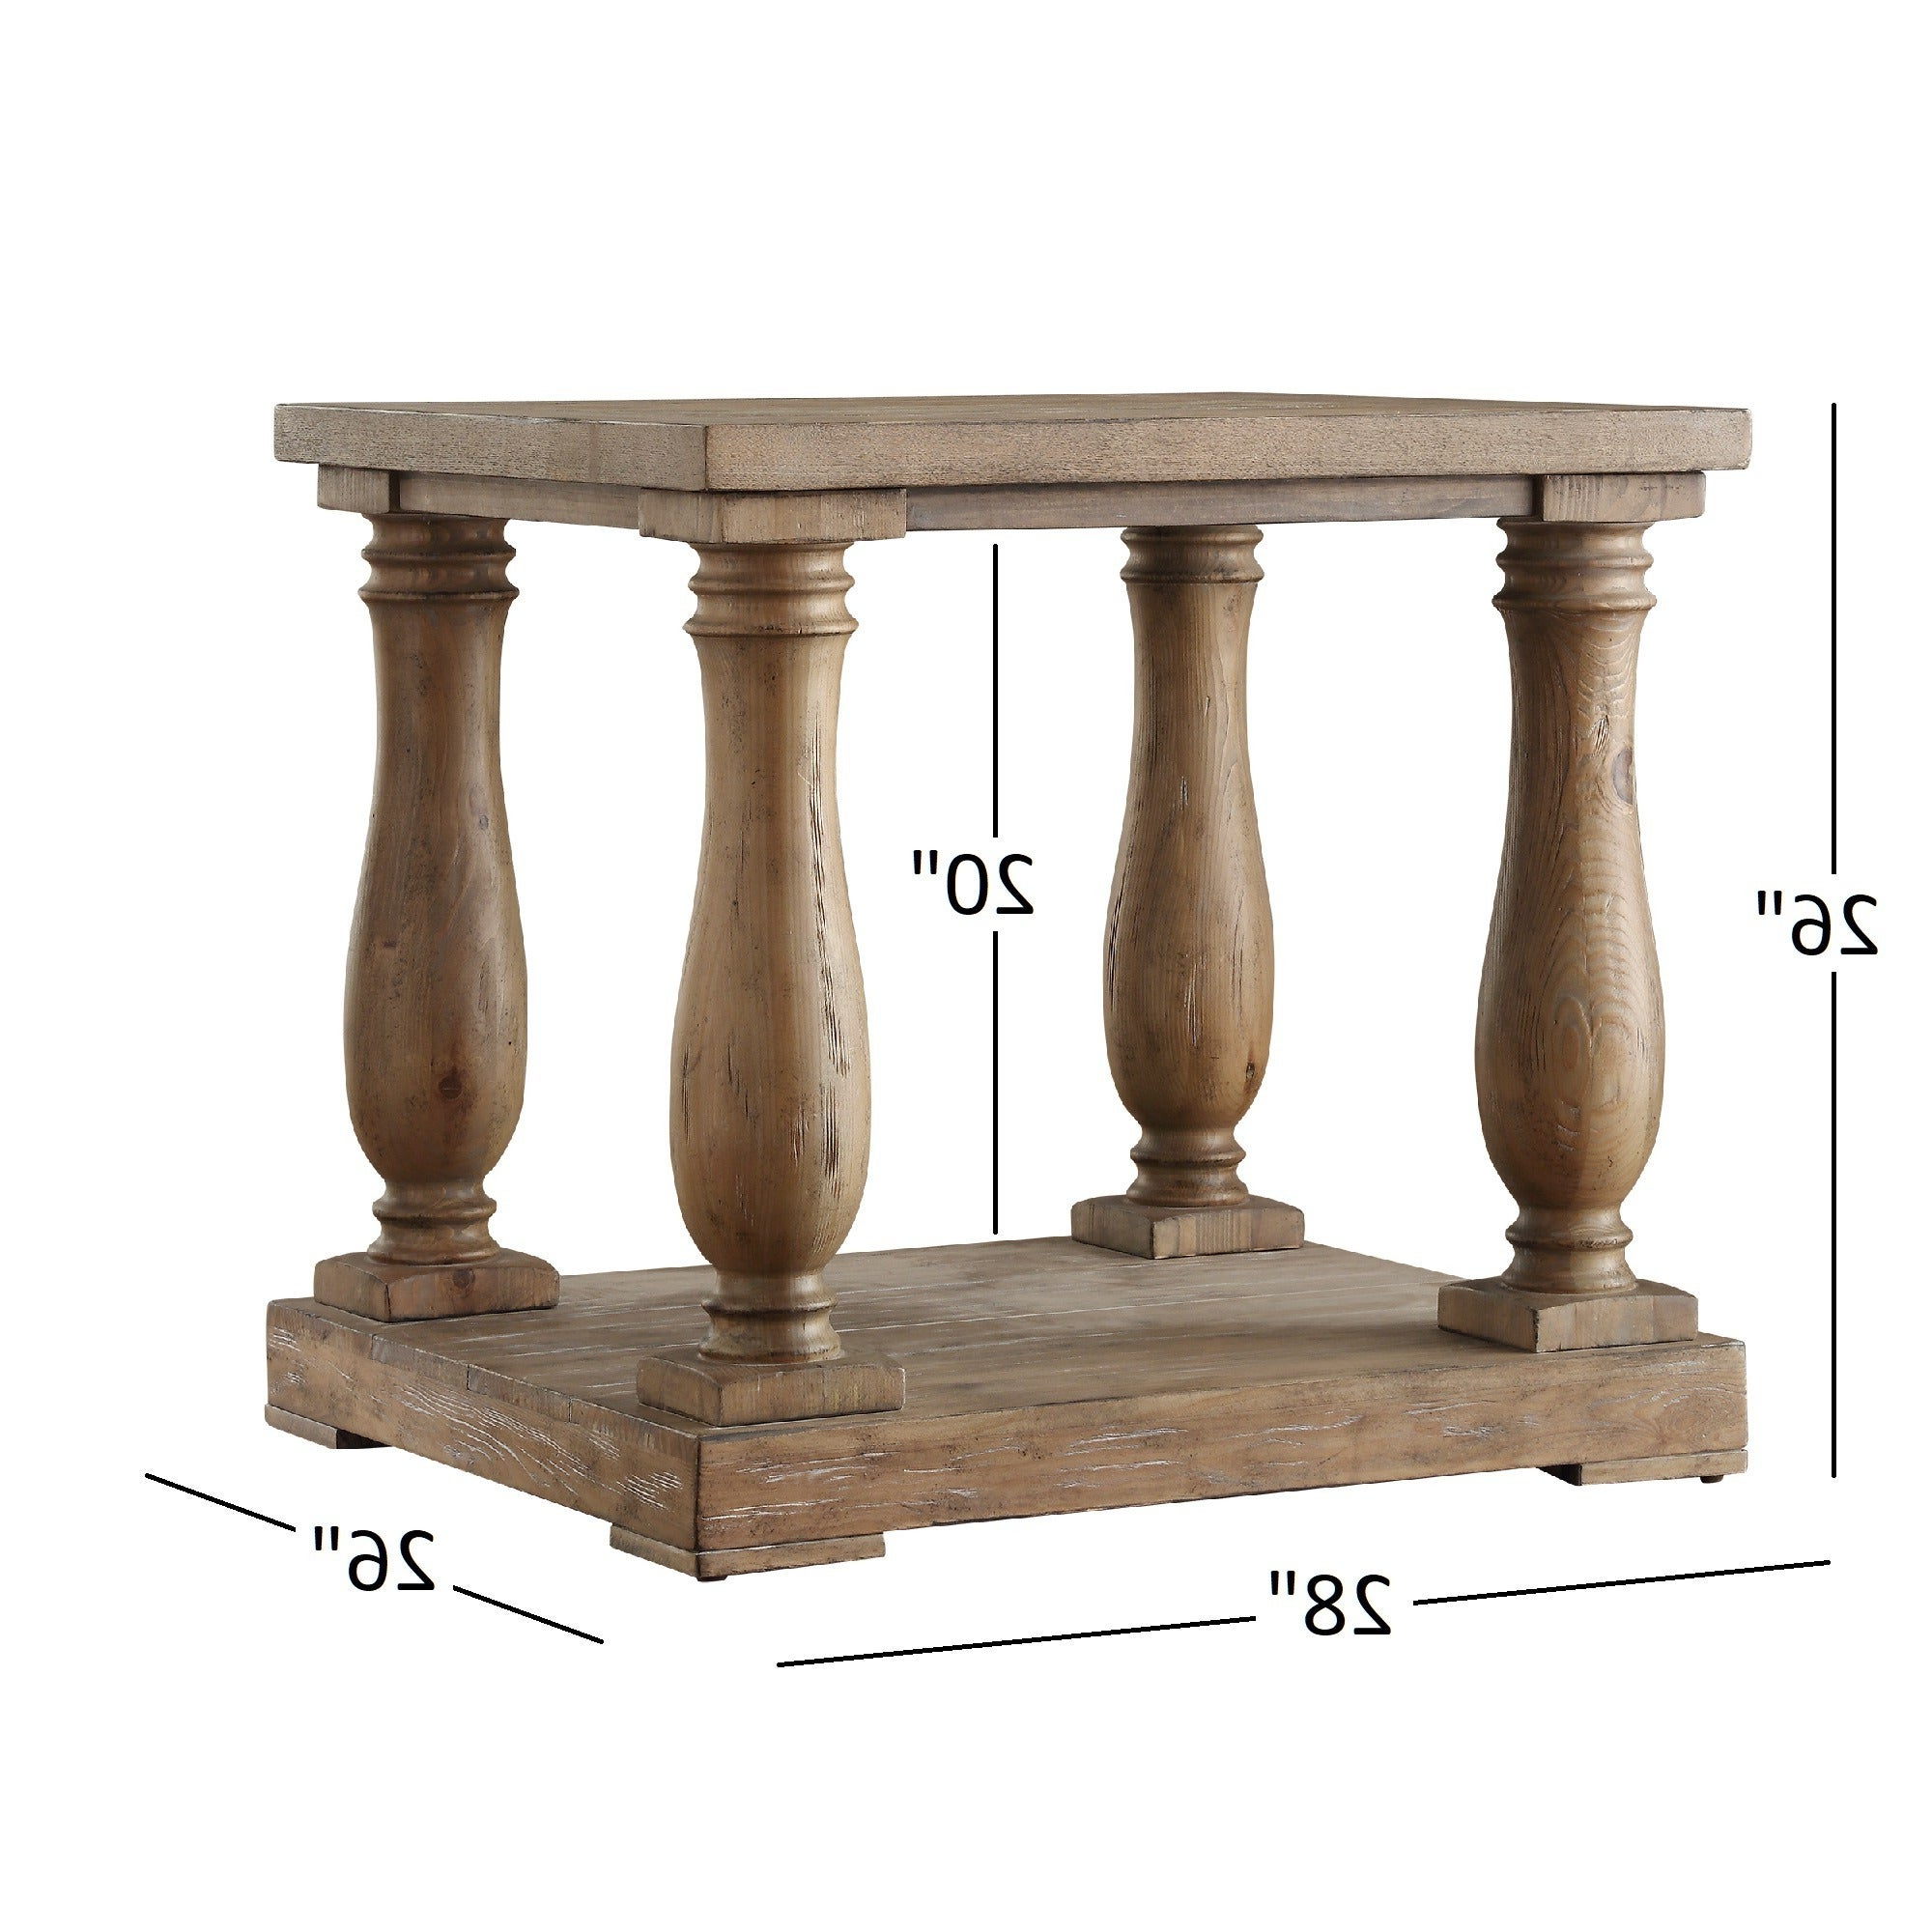 Edmaire Rustic Pine Baluster 3 Piece Table Setinspire Q Artisan With Regard To Widely Used Edmaire Rustic Pine Baluster Coffee Tables (Gallery 17 of 20)